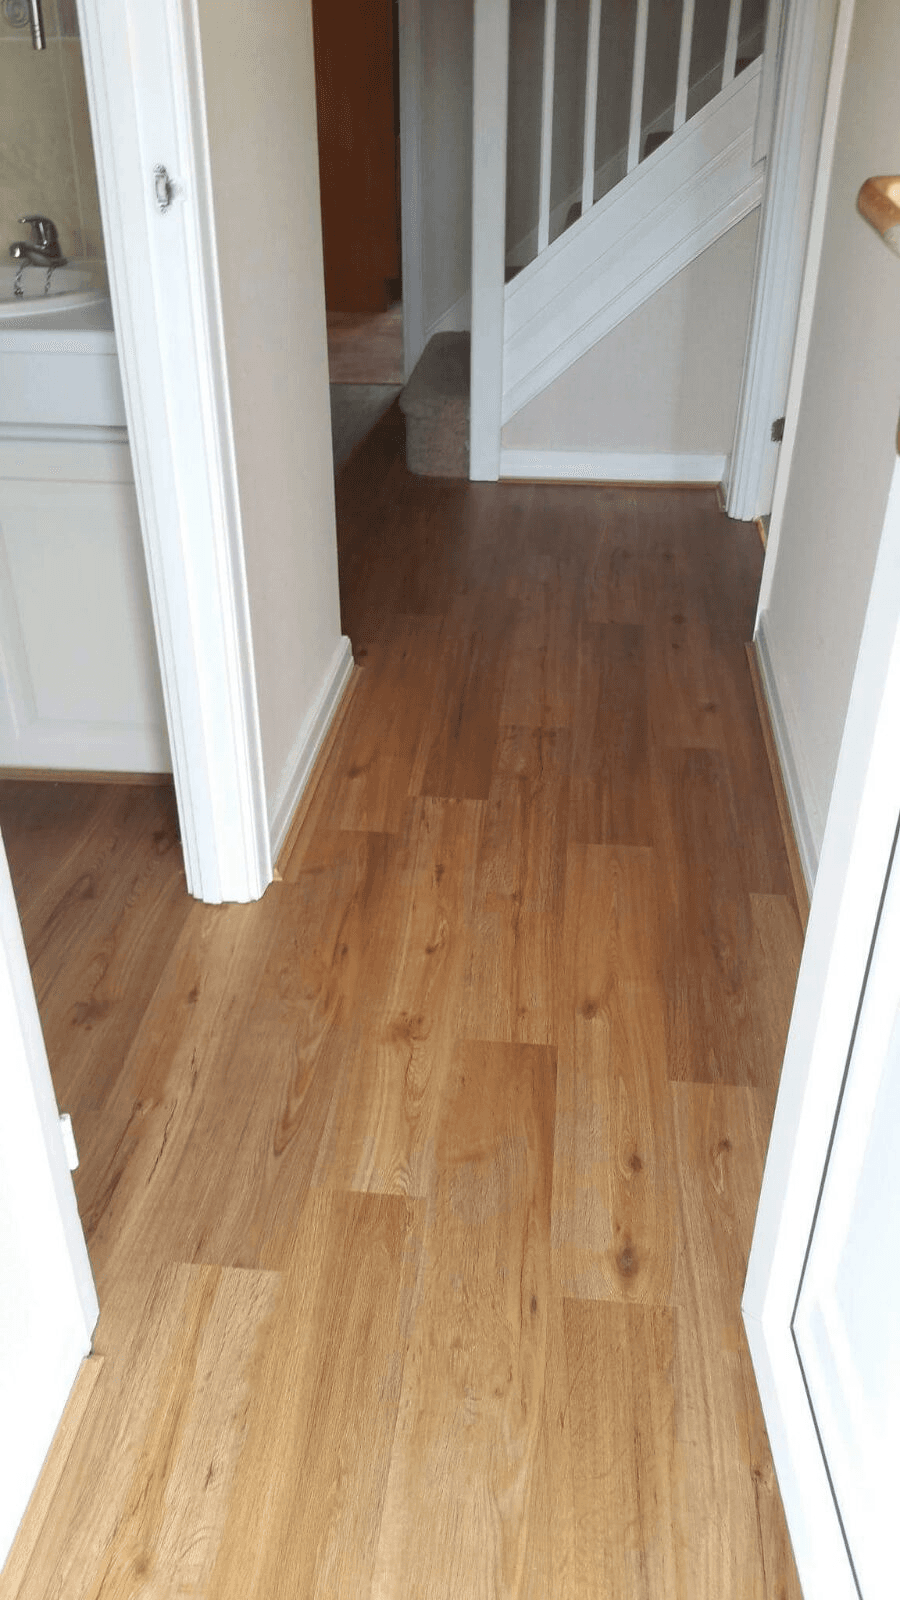 flooring near stairs